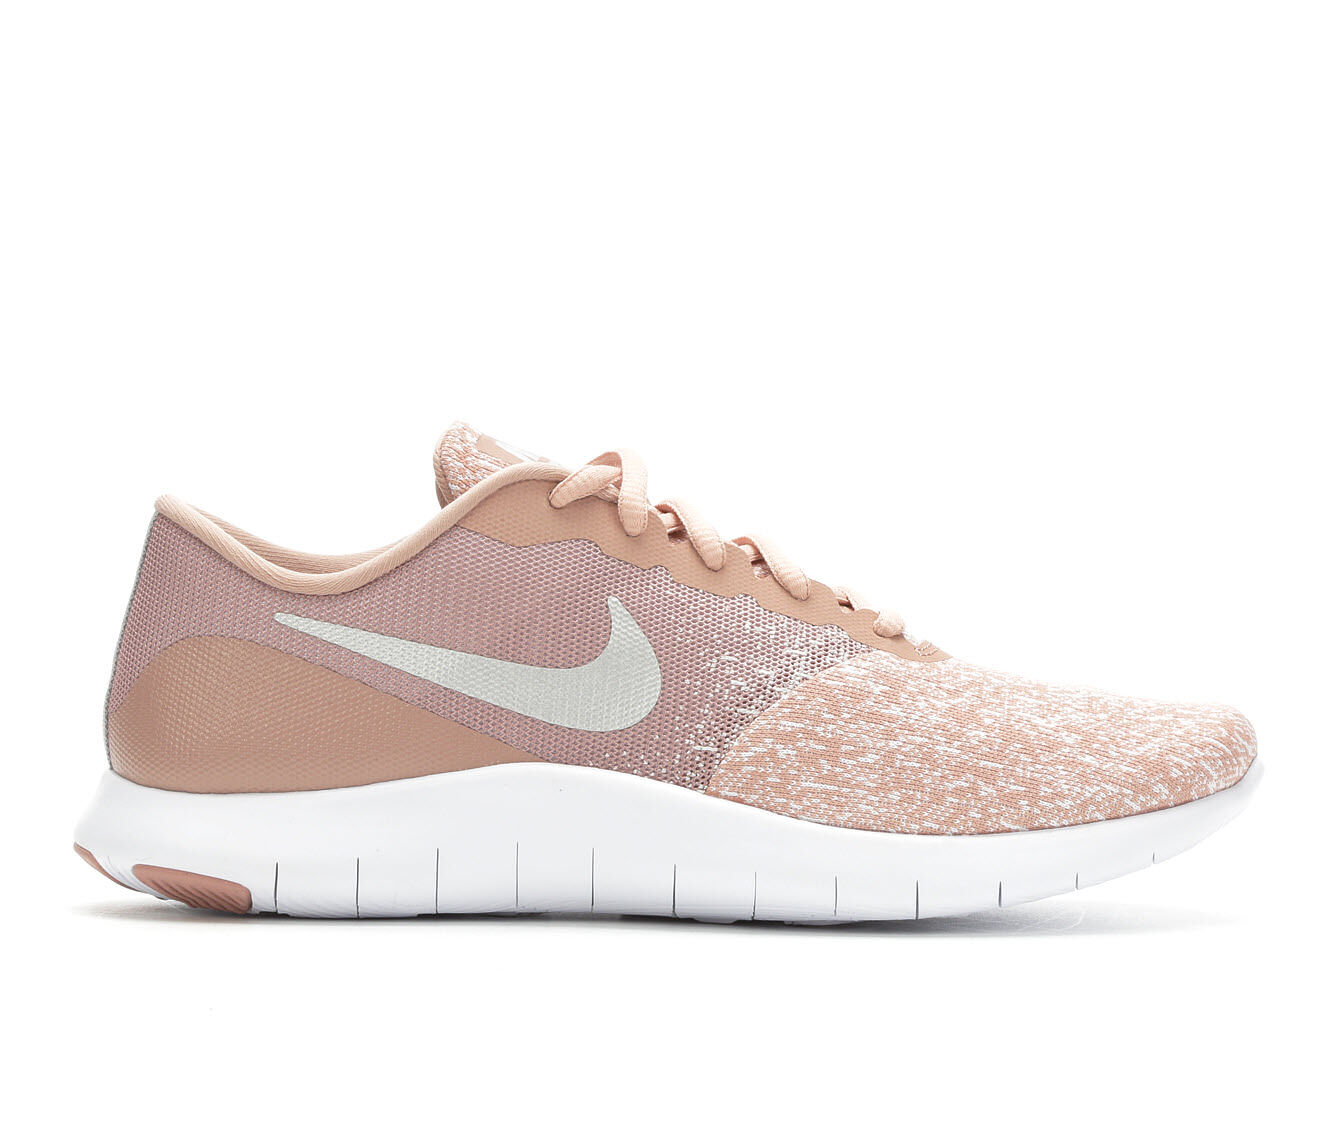 Women's Nike Flex Contact Running Shoes Pink/White/Silv